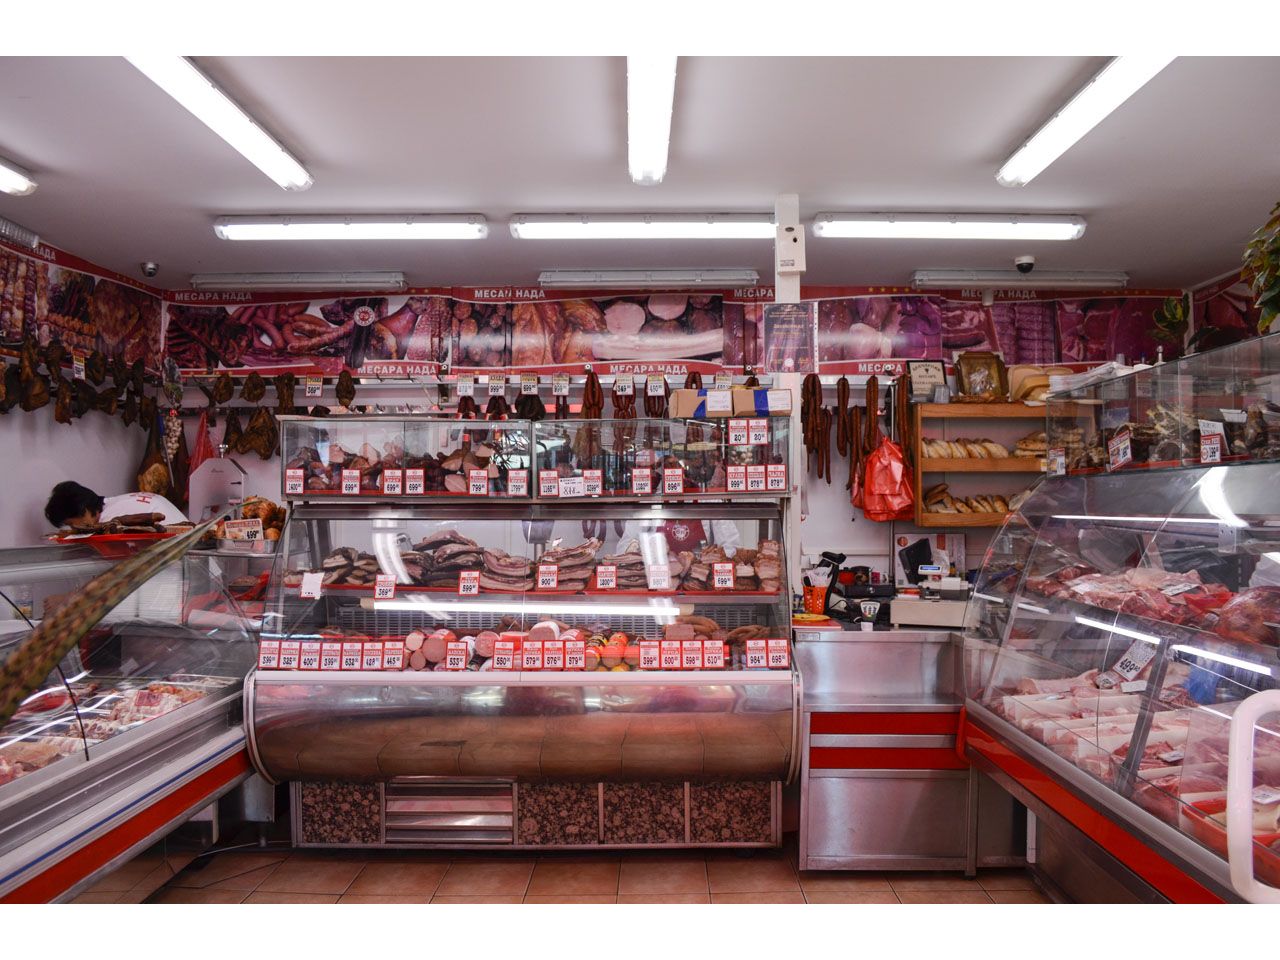 MESARA NADA Butchers, meat products Beograd